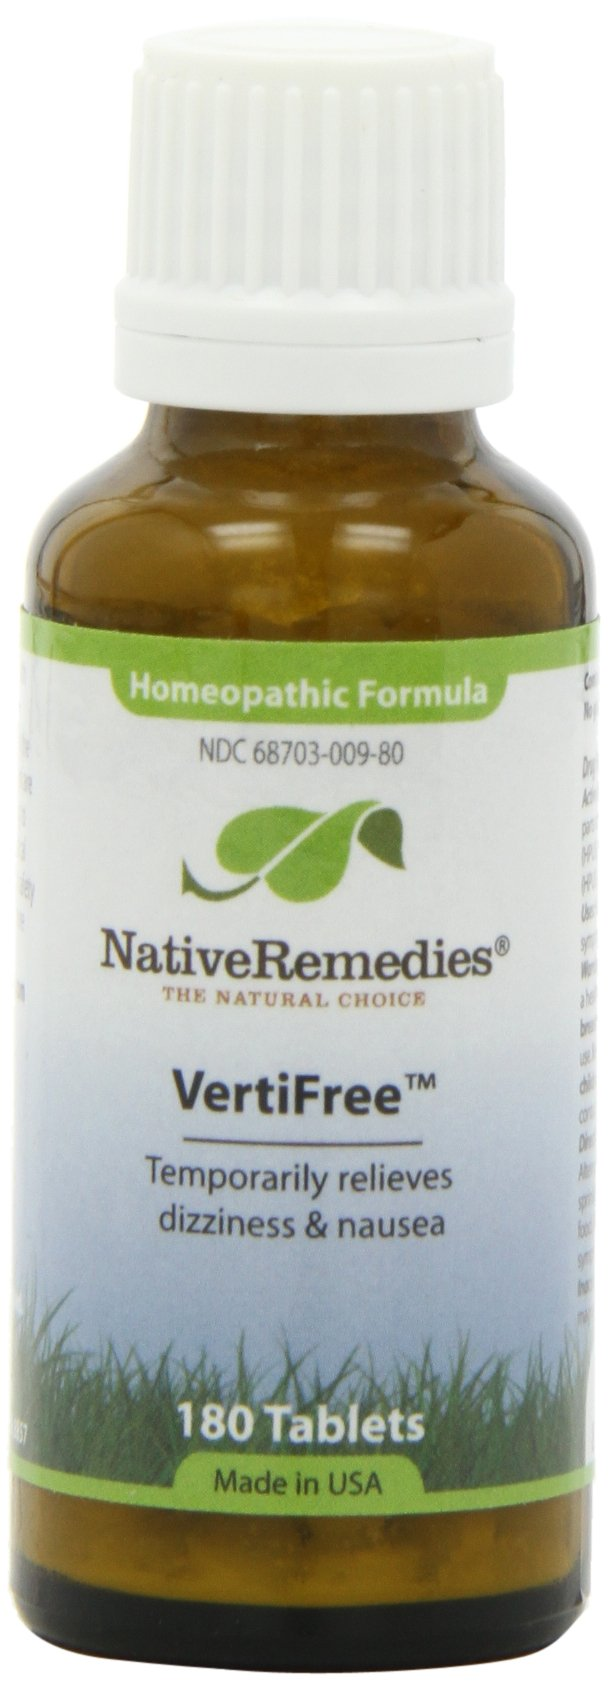 VertiFree Temporarily Relieves Dizziness and Supports Inner Ear Balance